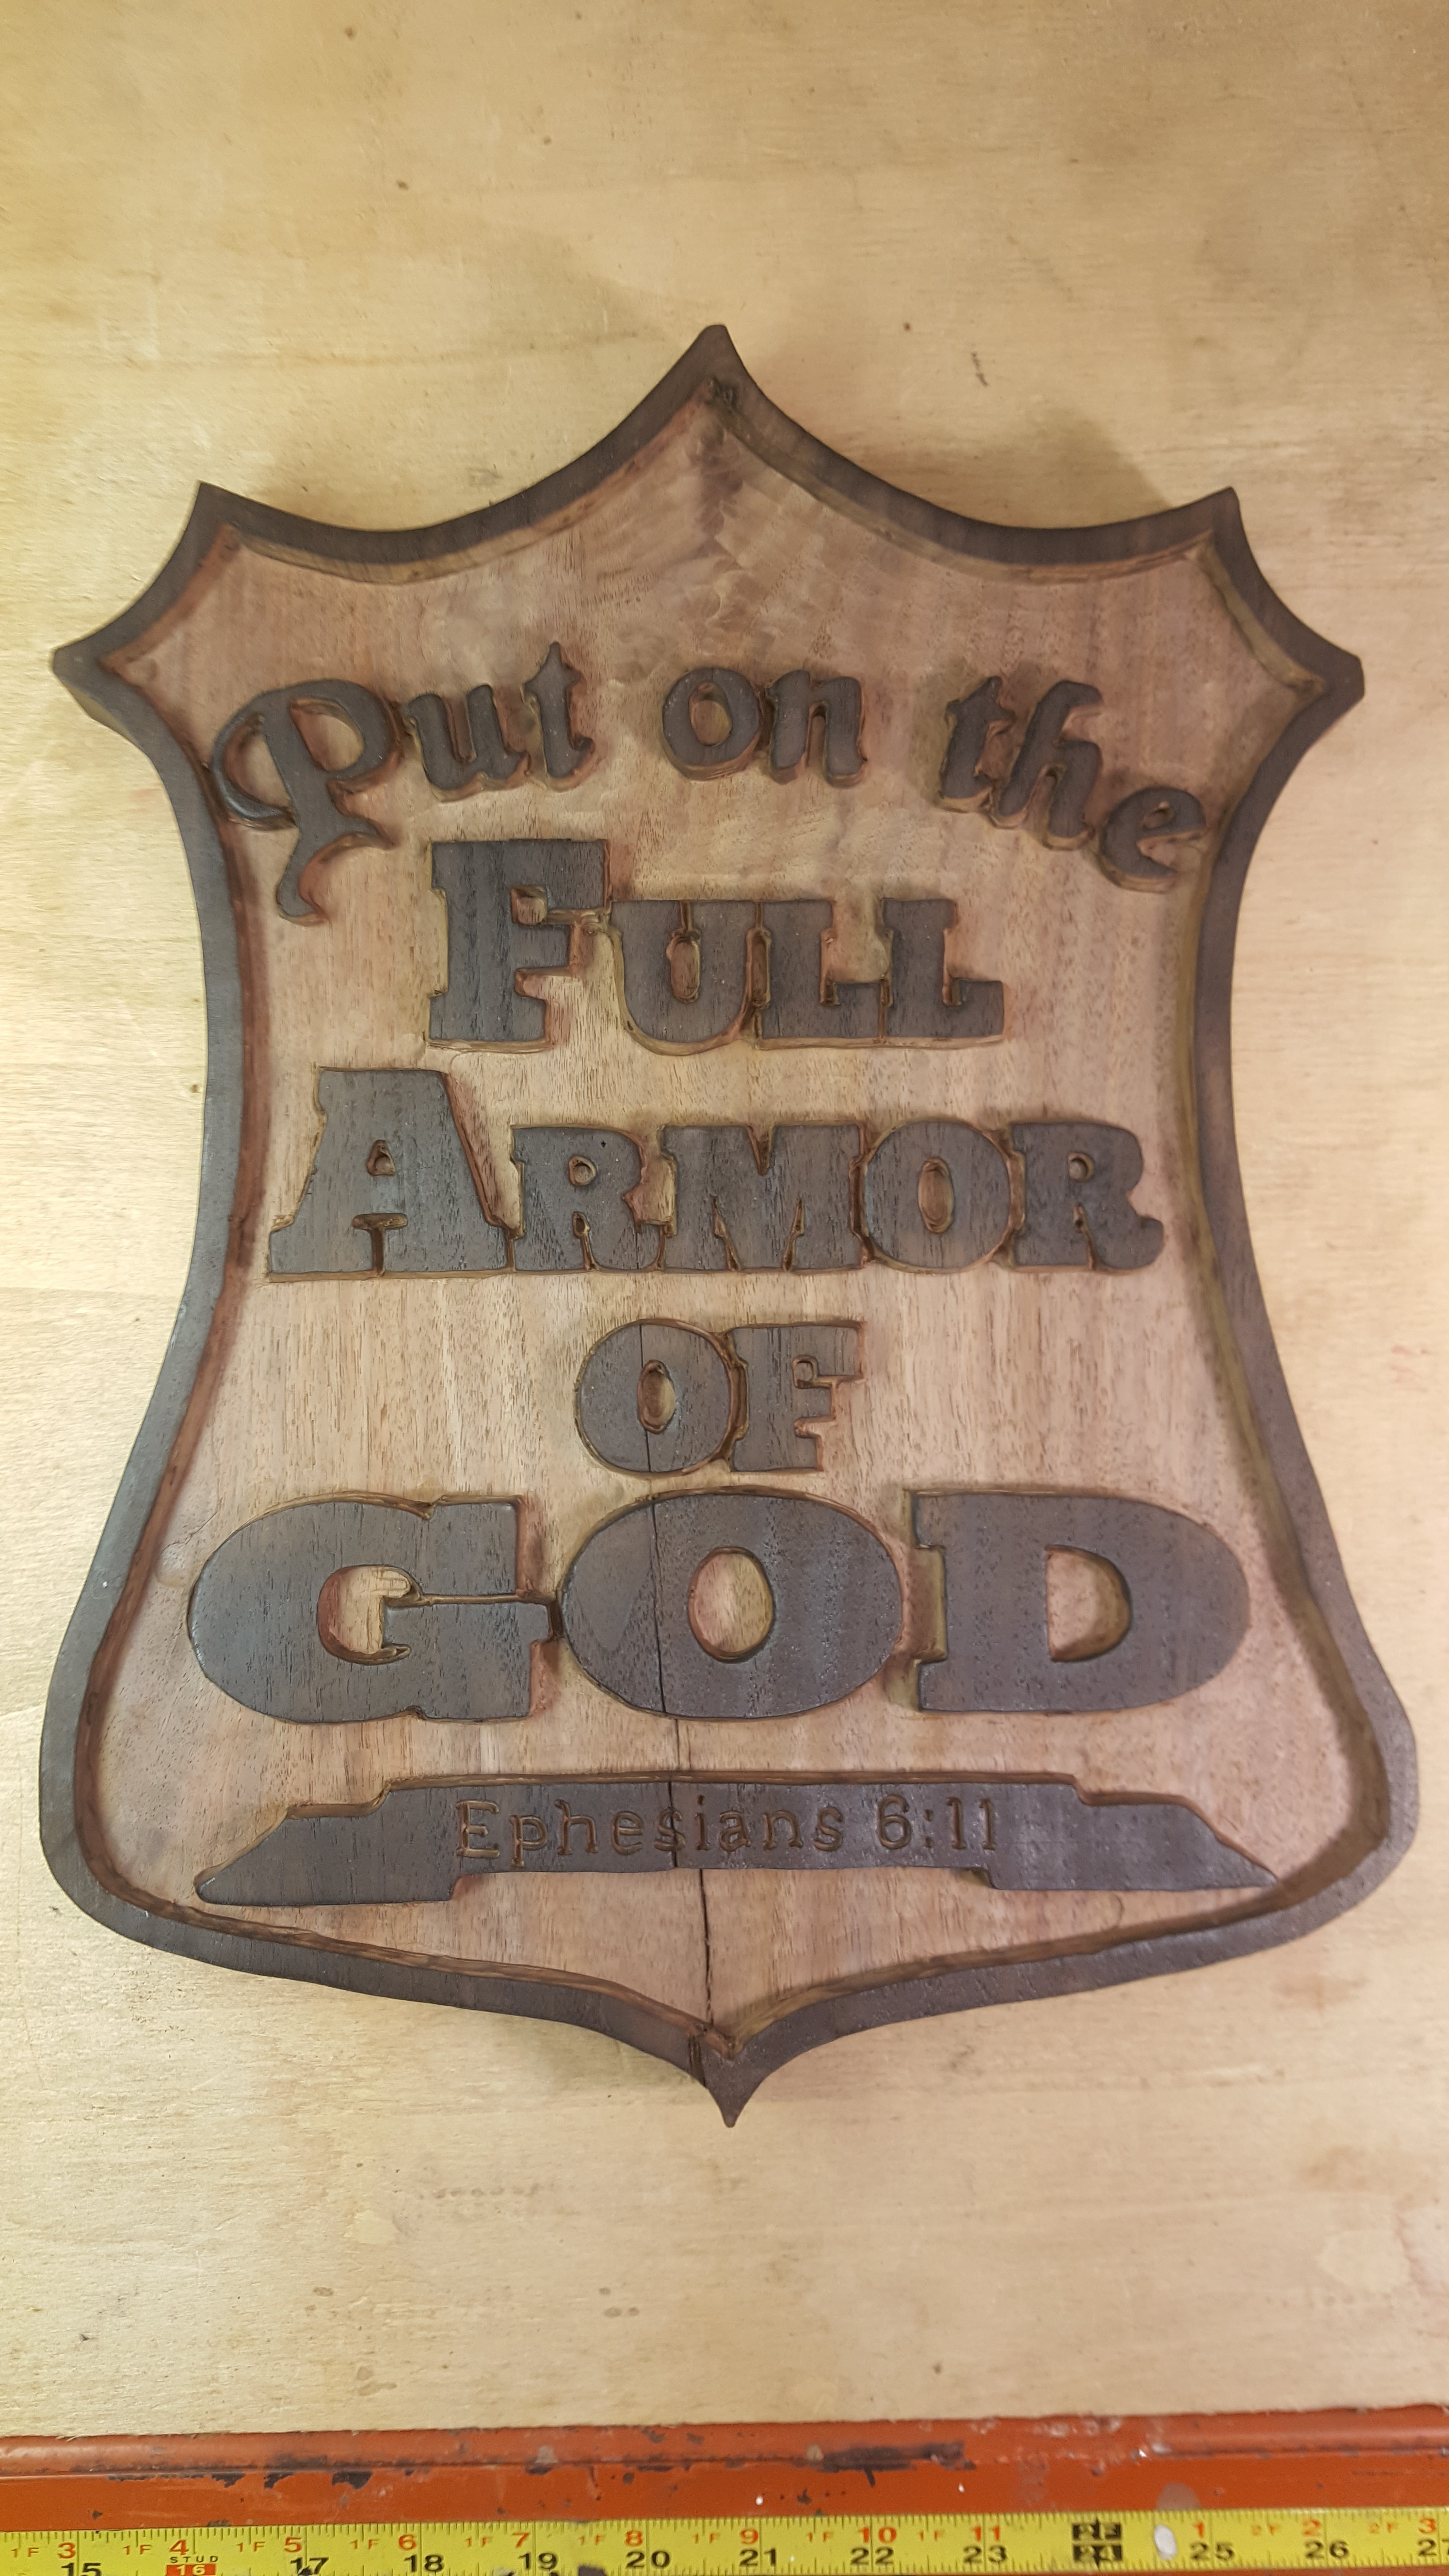 handmade routed put on the full armor of god wooden sign christian